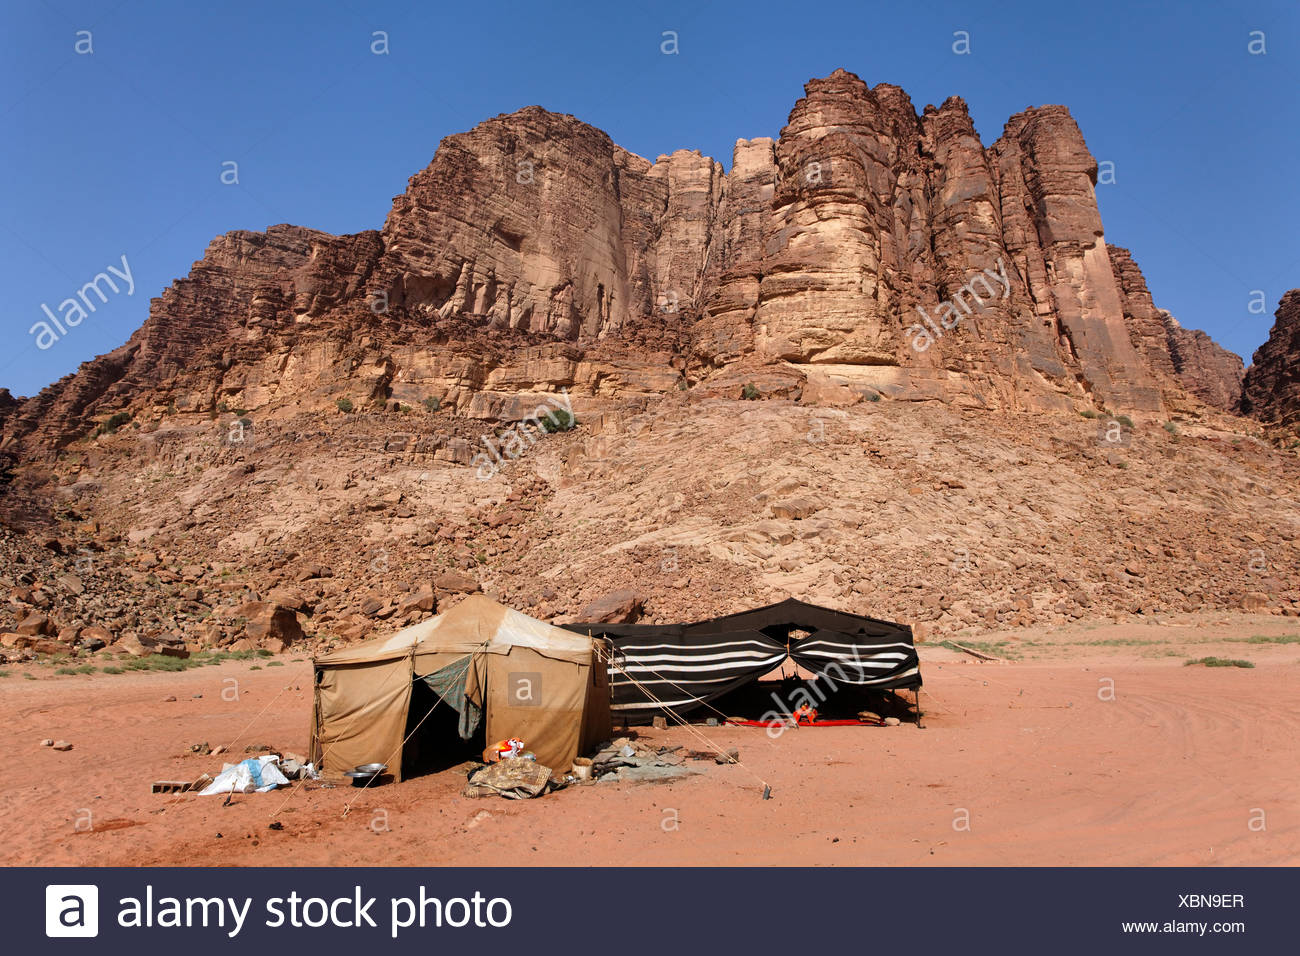 Mountain with Lawrence's Spring, Bedouin camp, Lawrence of Arabia, desert, Wadi Rum, Hashemite Kingdom of Jordan, Middle East - Stock Image